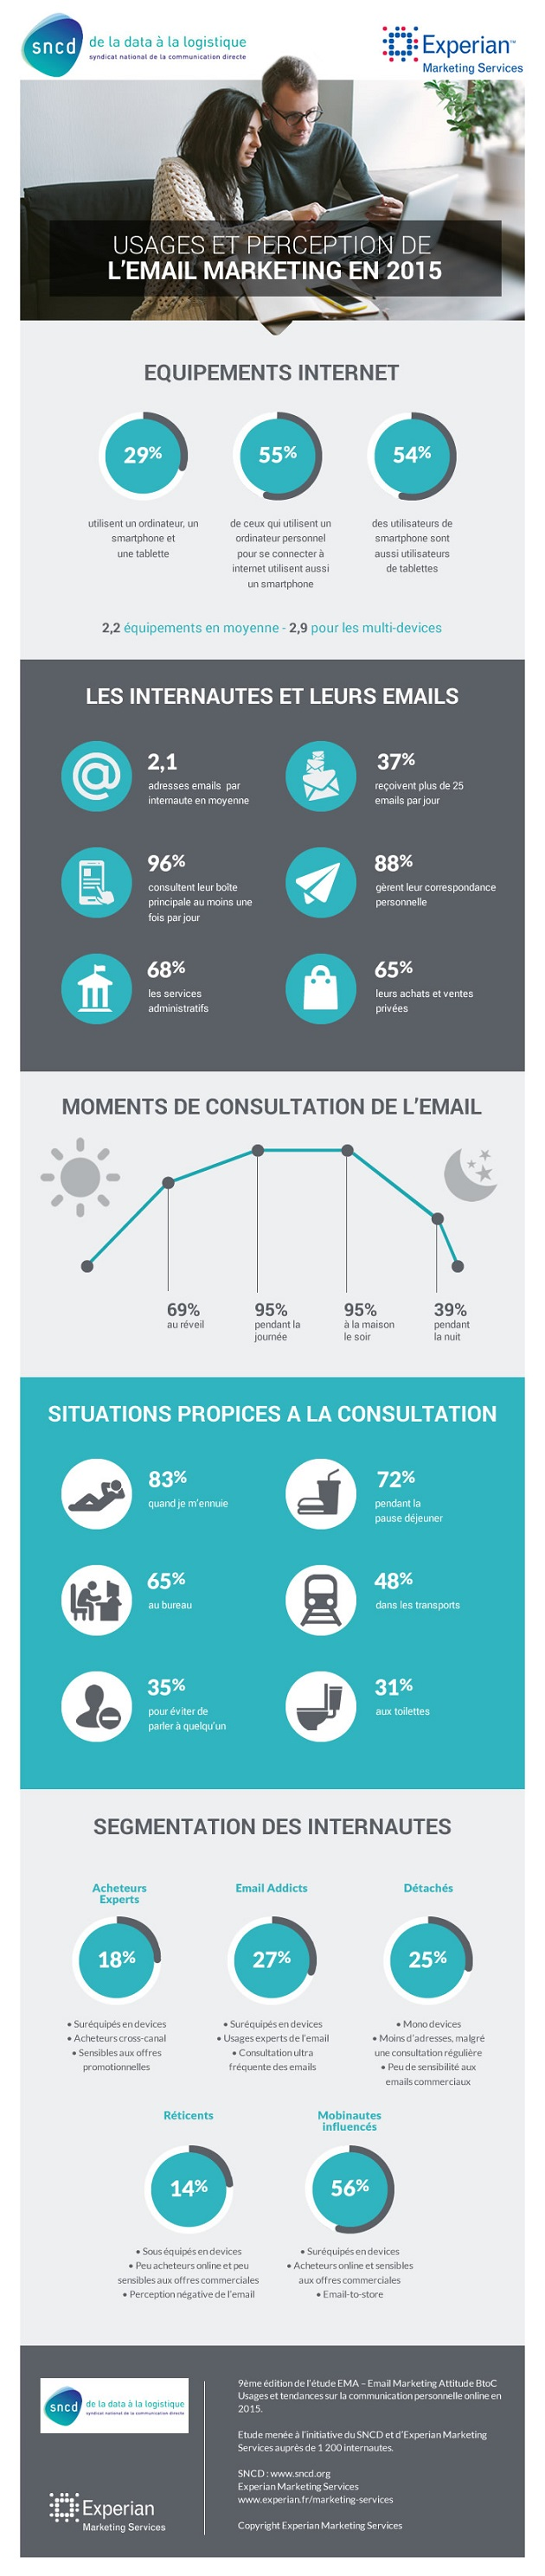 infographie-sncd